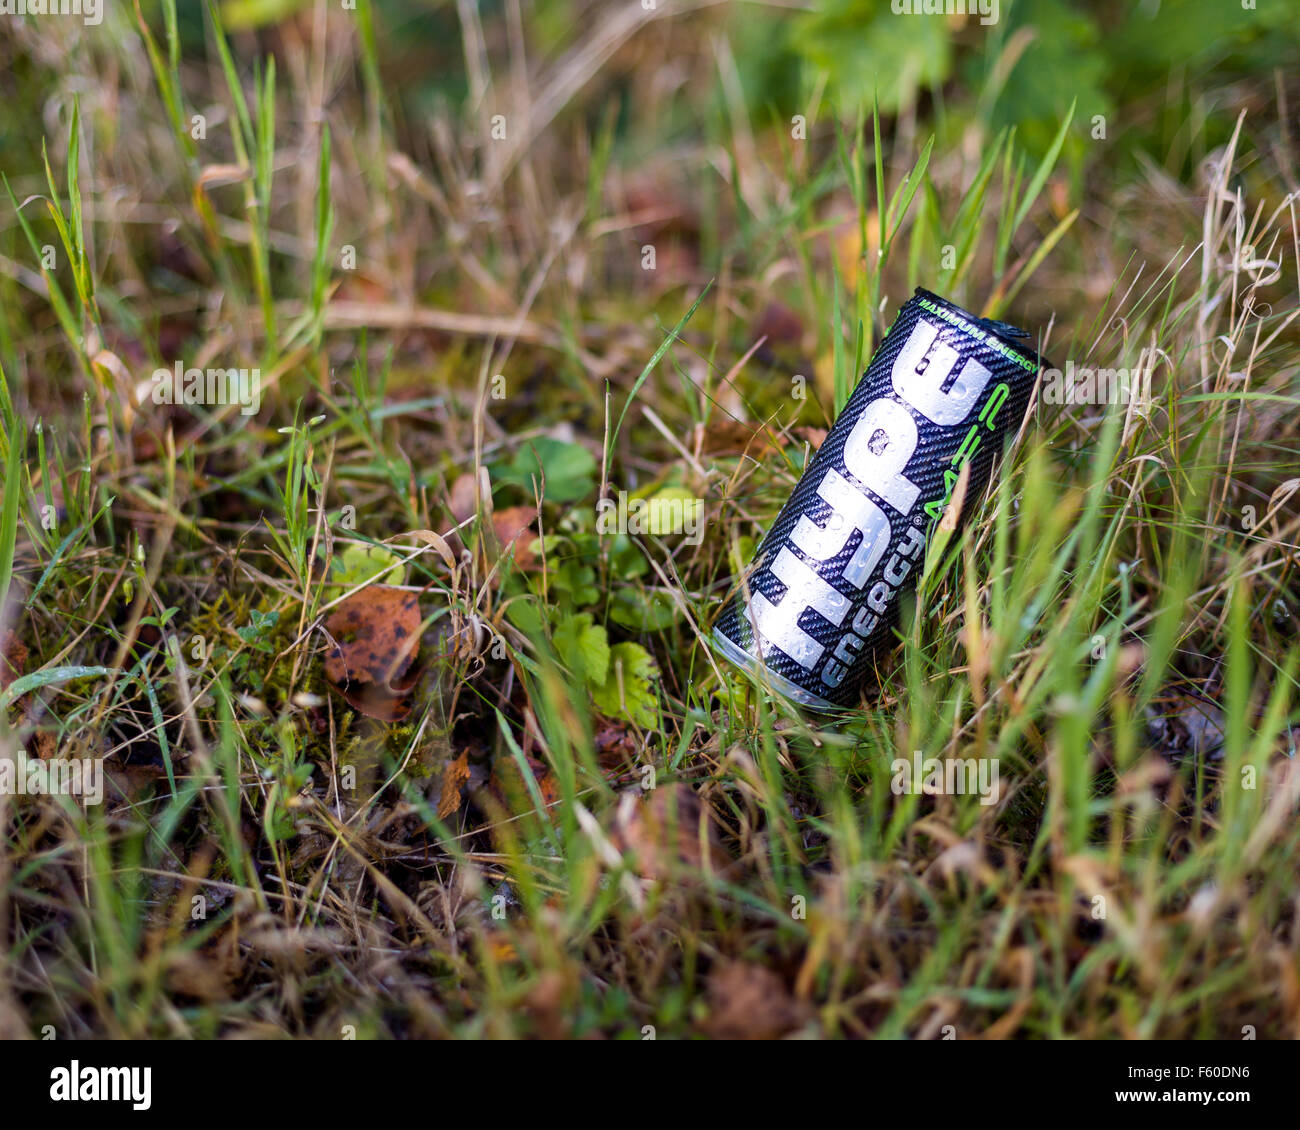 Can of aluminium or aluminum Hype Maximum Energy drink laying discarded as litter in grass  Model Release: No.  - Stock Image